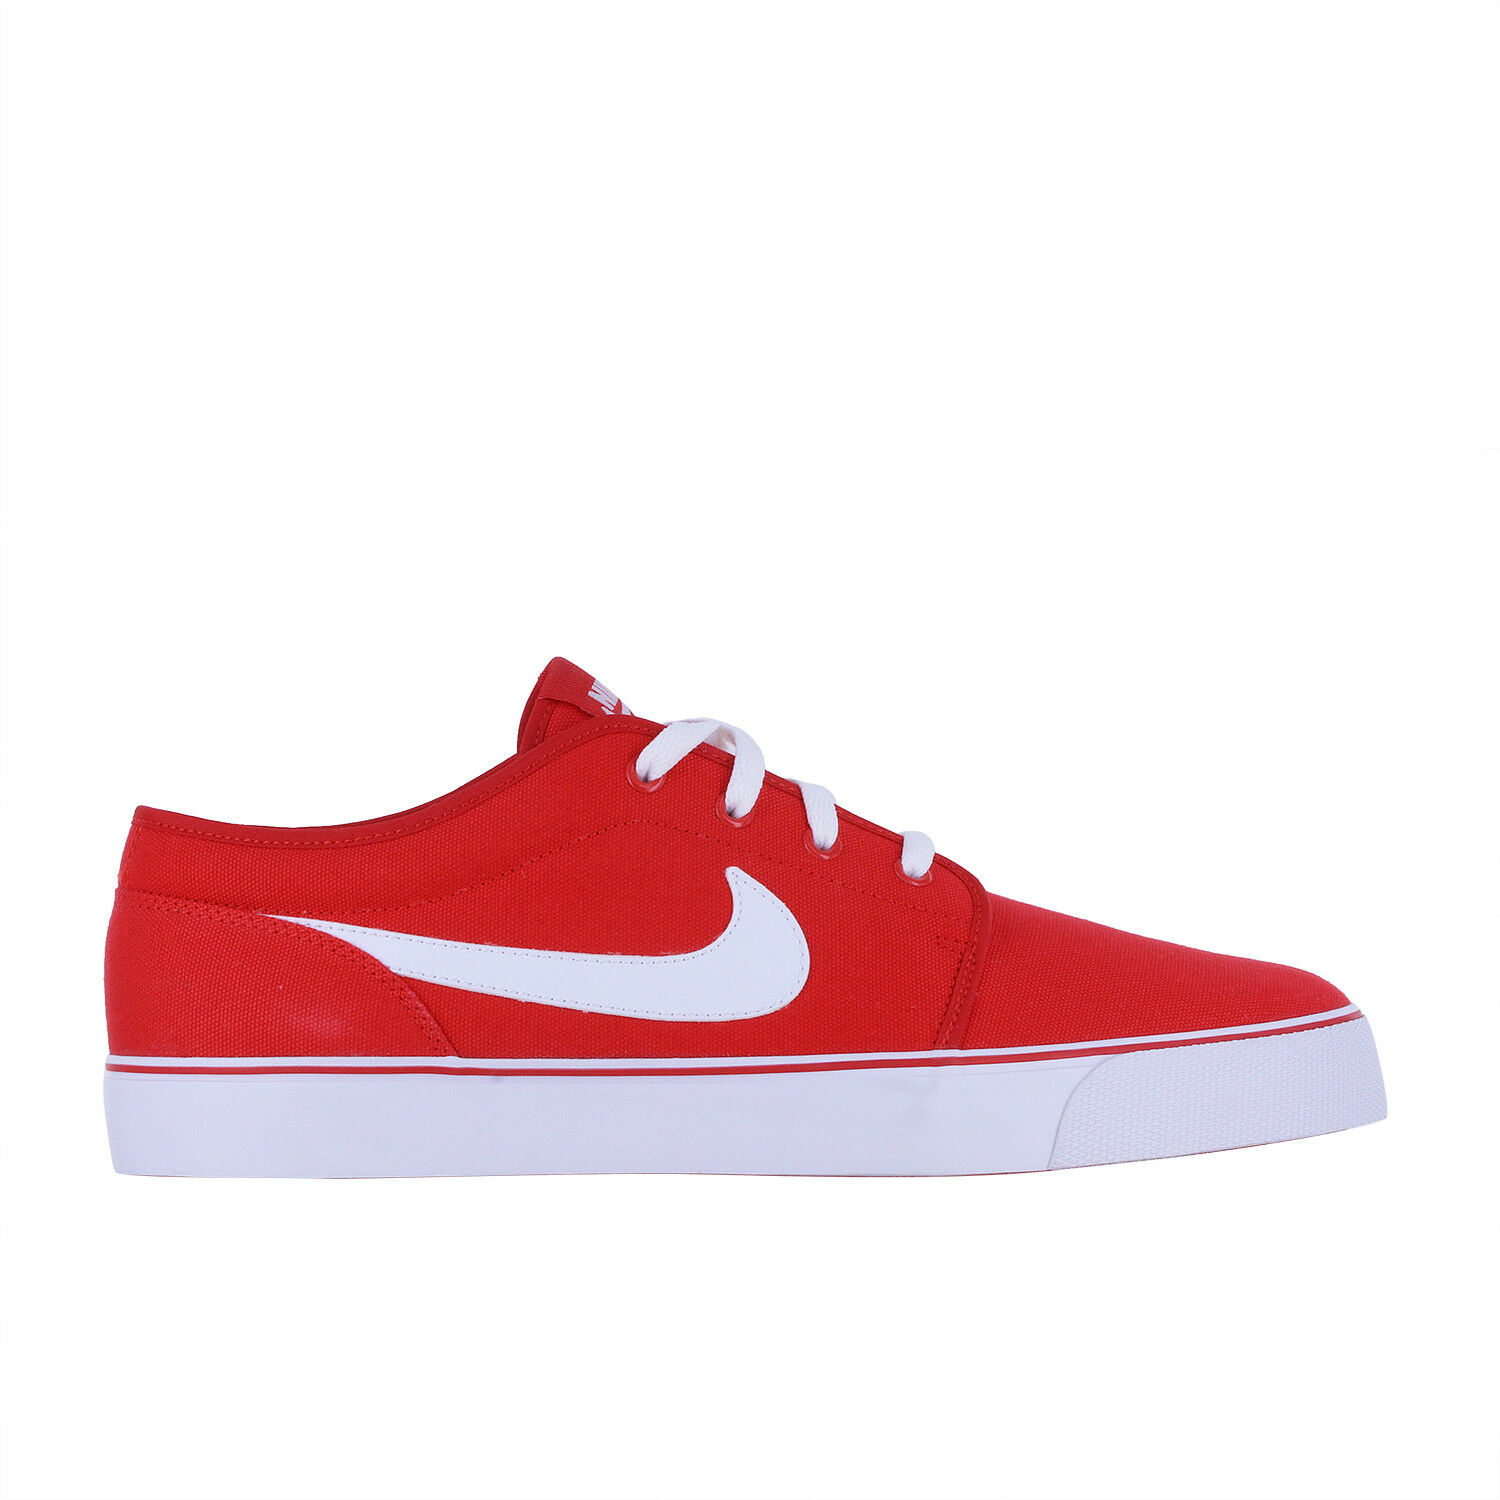 Nike Mens Low Textile shoes 555272-616-13EY Red Sz 13